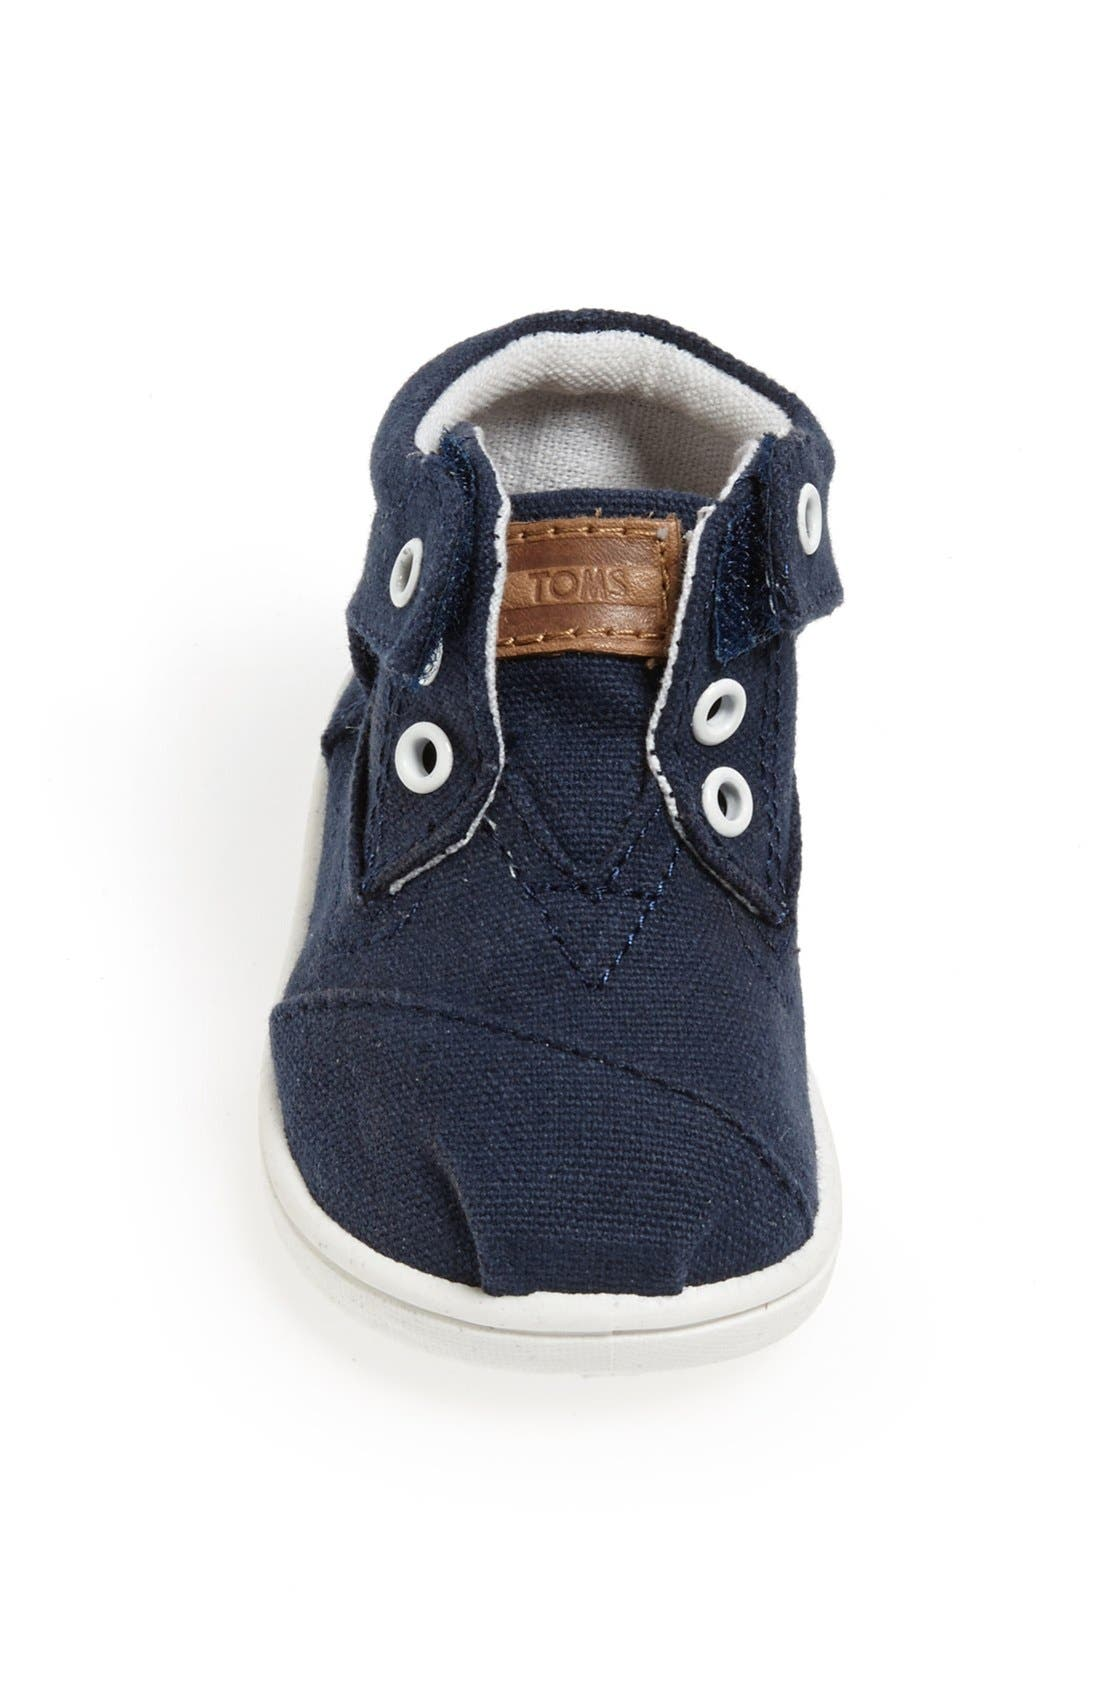 Alternate Image 3  - TOMS 'Botas - Tiny' Canvas Boot (Baby, Walker & Toddler)